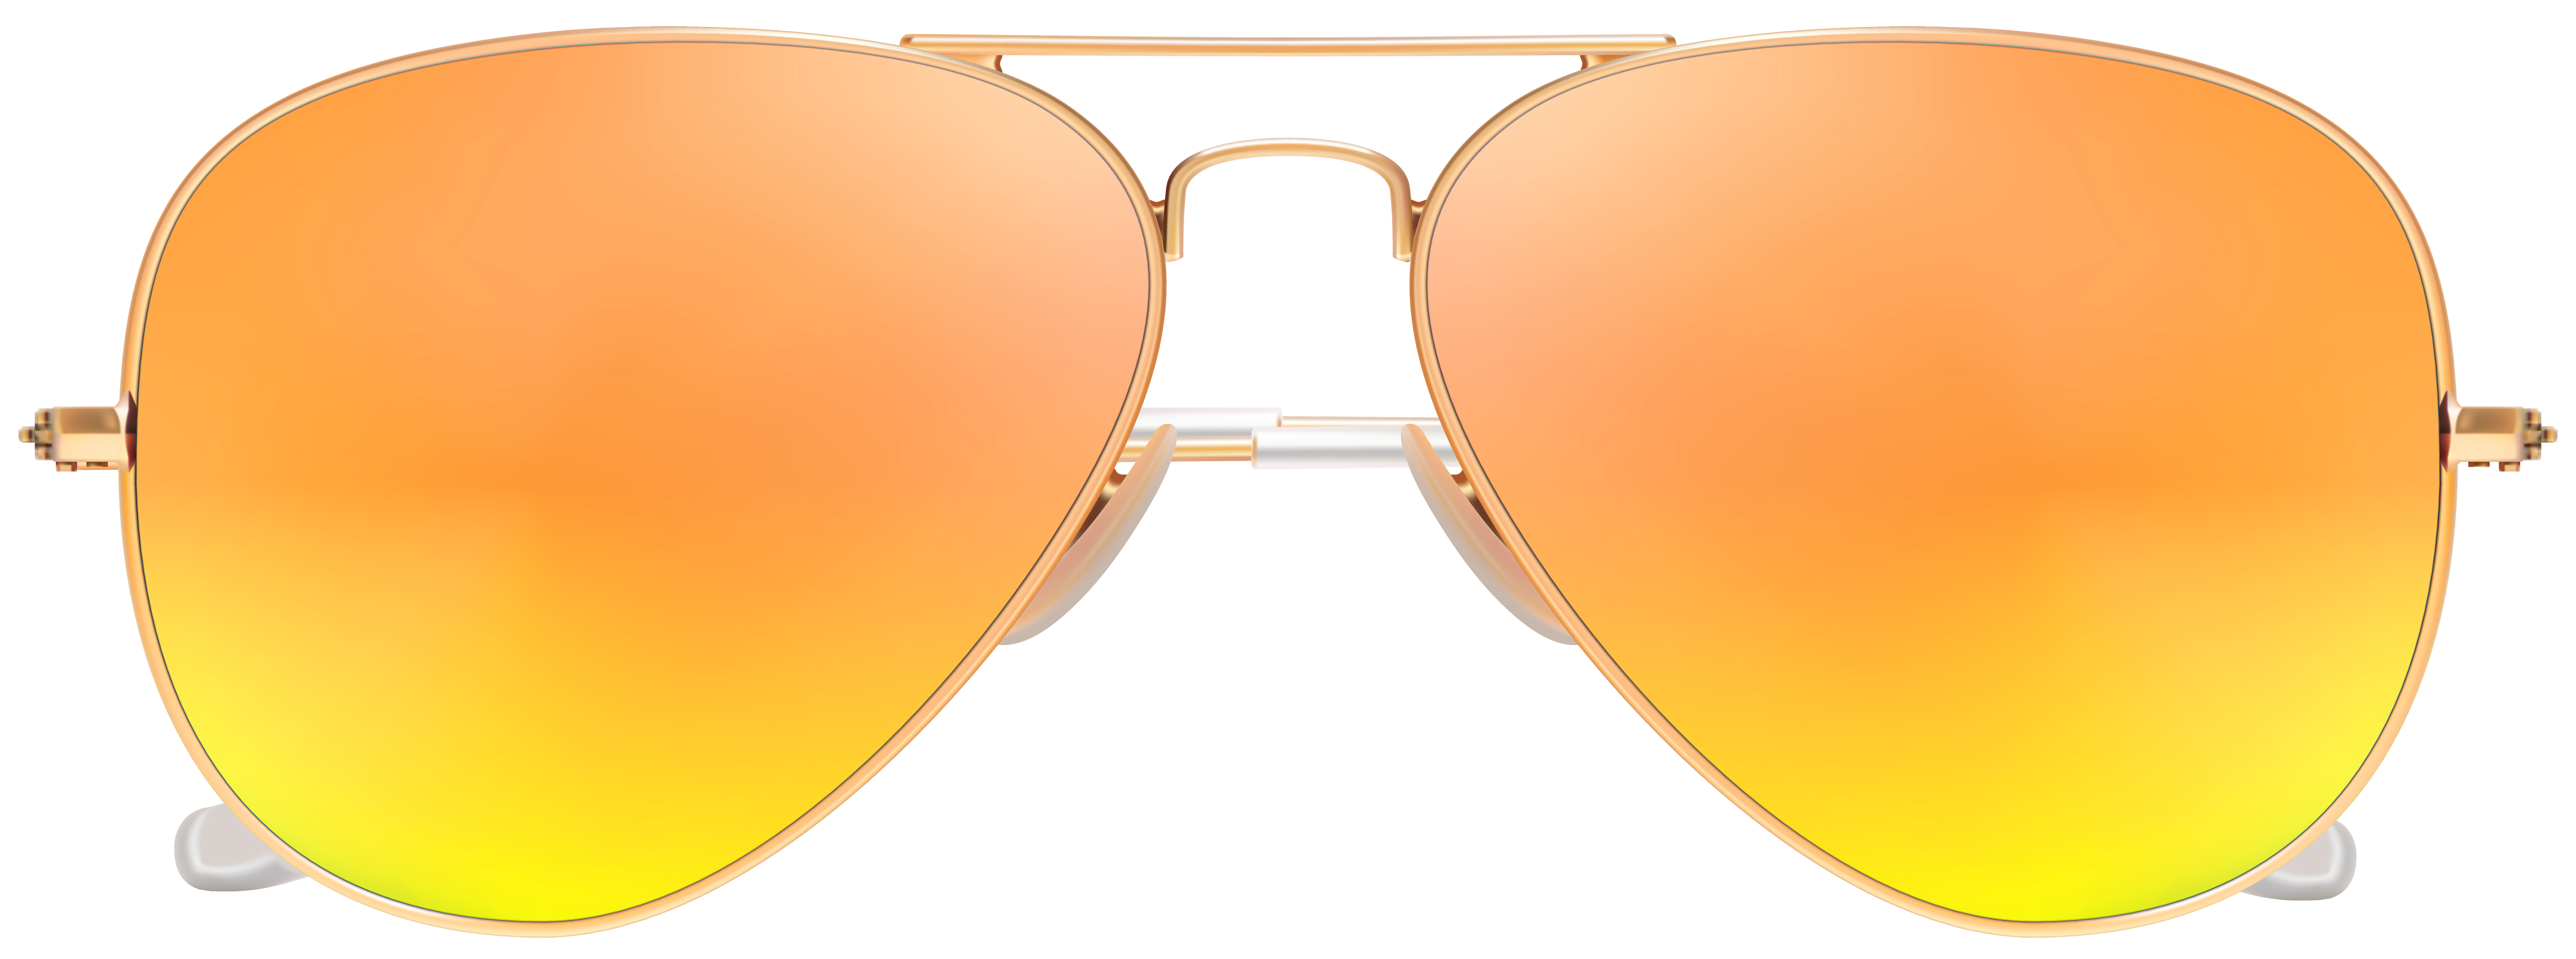 Sun sunglasses clipart image library stock Sunglasses PNG Transparent Clip Art Image | Gallery Yopriceville ... image library stock